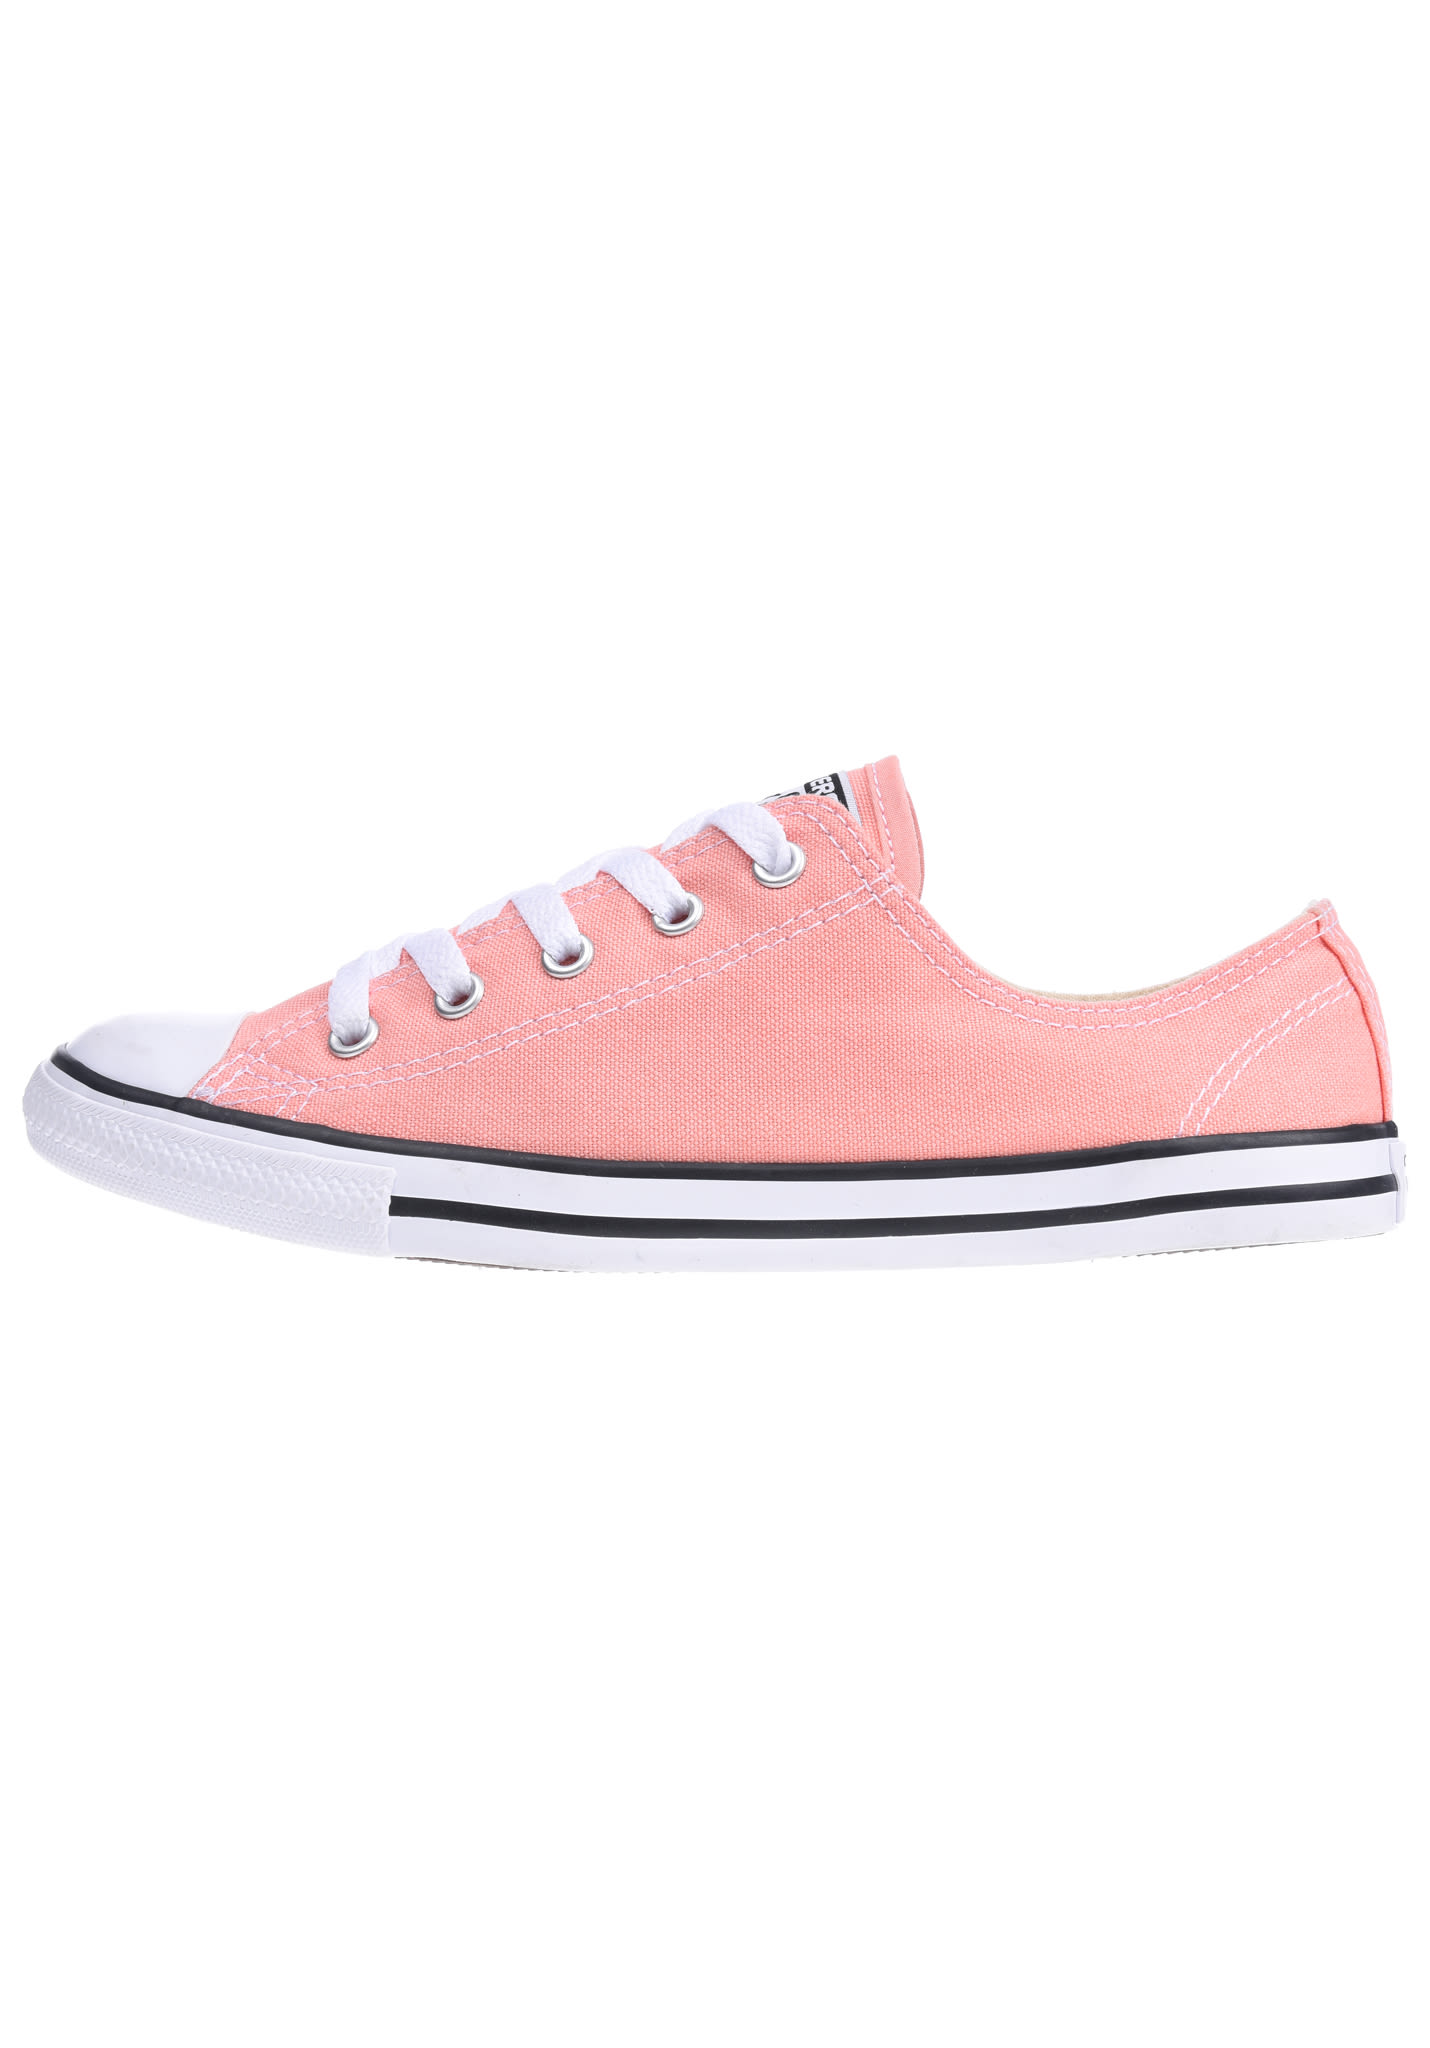 sports shoes a4bc8 c638a Converse Chuck Taylor All Star Dainty OX - Sneaker für Damen - Pink